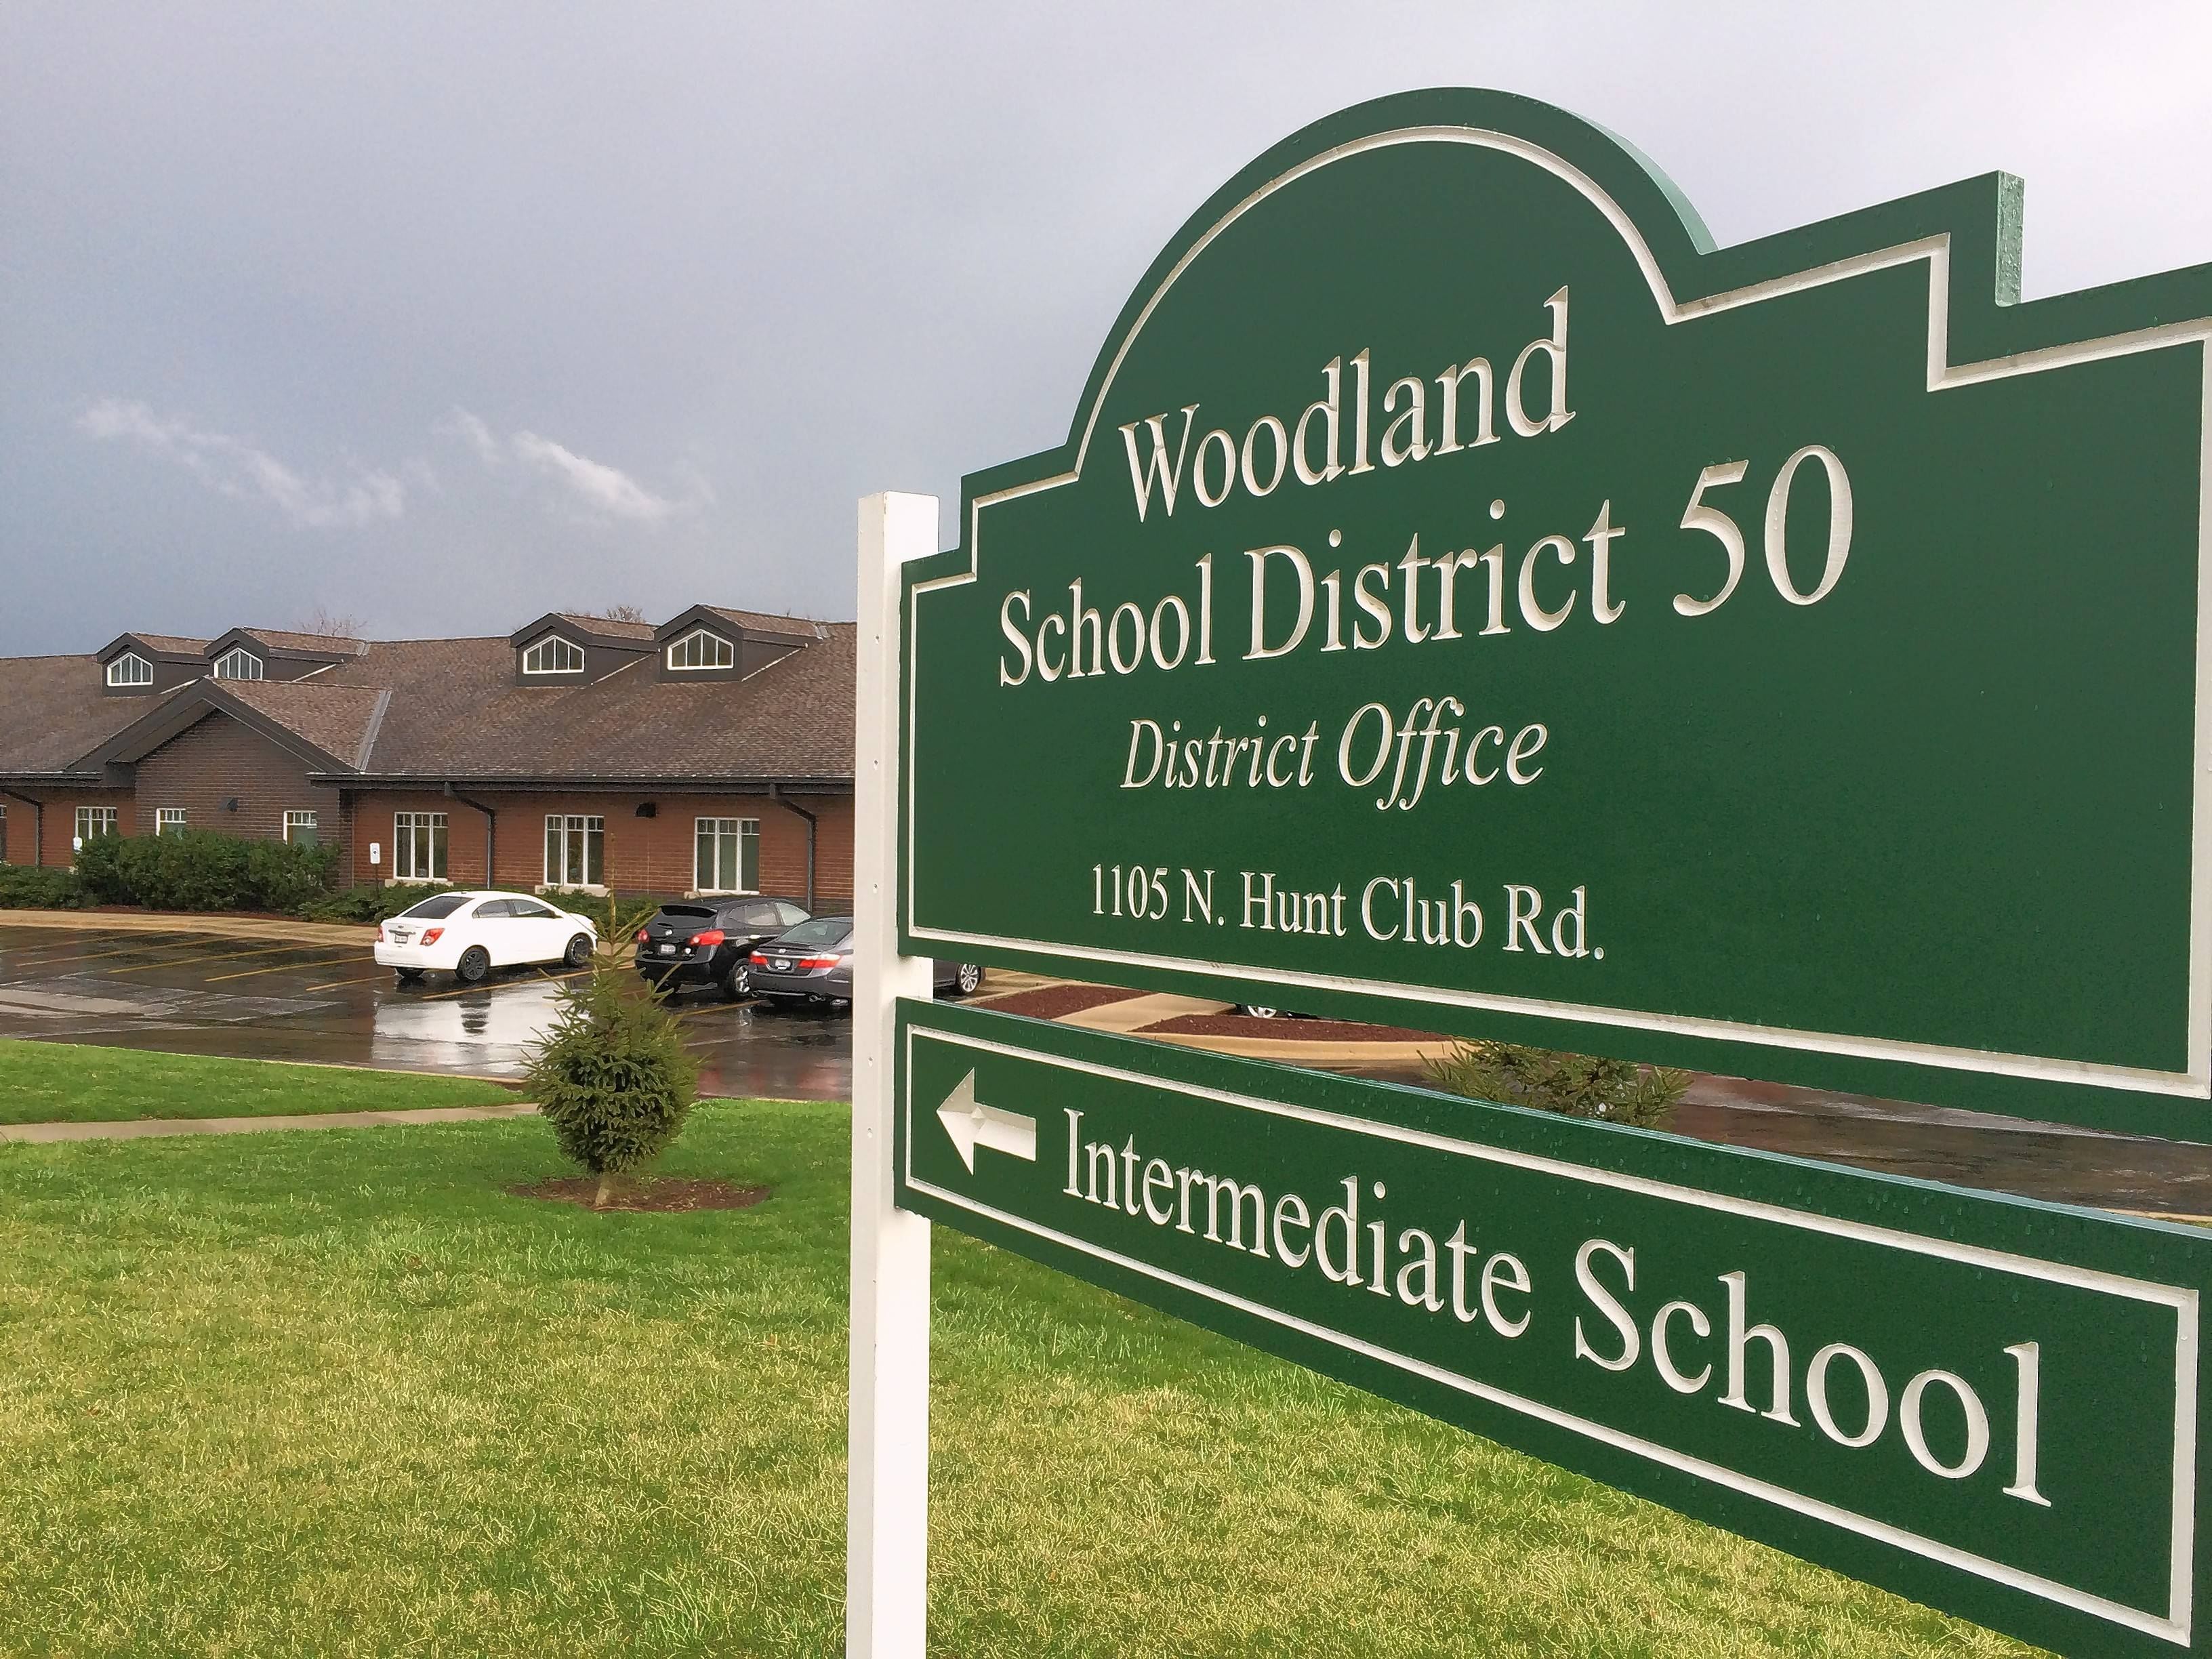 Officials at Woodland Elementary District 50 in Gurnee plan to file complaints with Lake County and state prosecutors over possible misuse of the school system's electronic networks and equipment.